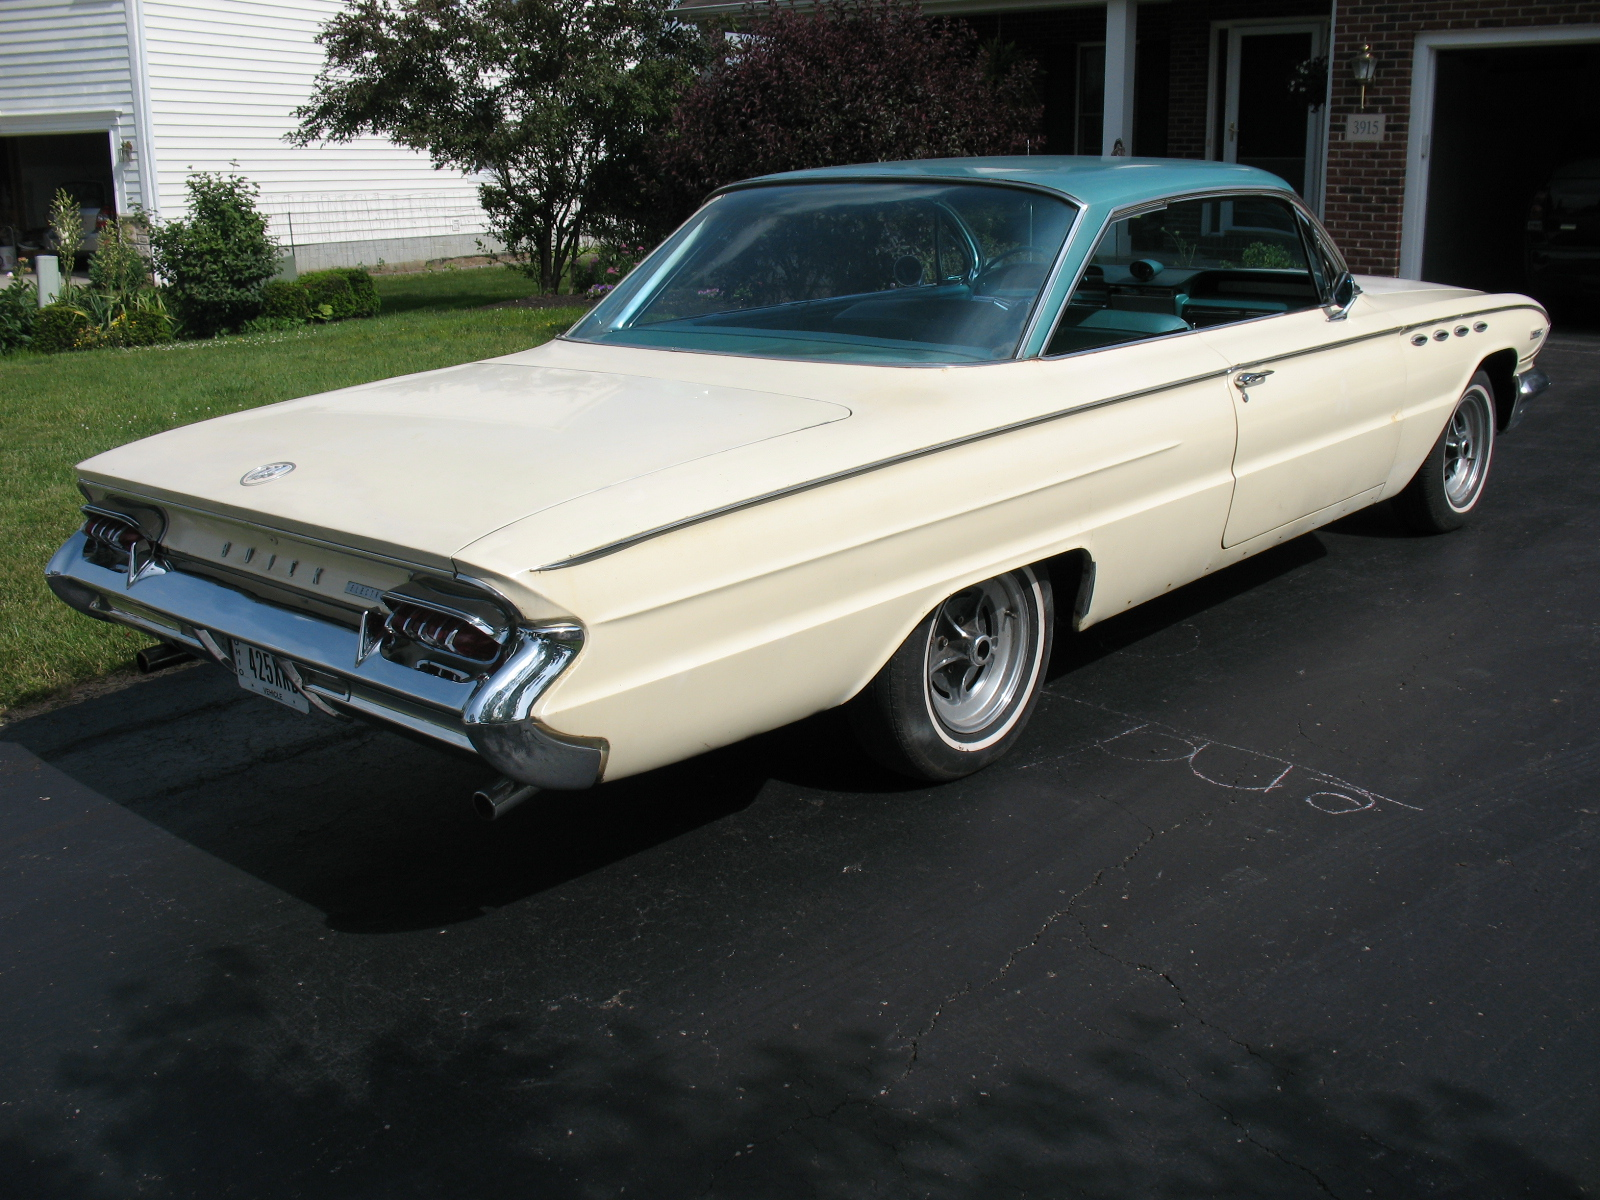 1961 Buick Electra 2 Door Hardtop The Hamb Convertible 61 008